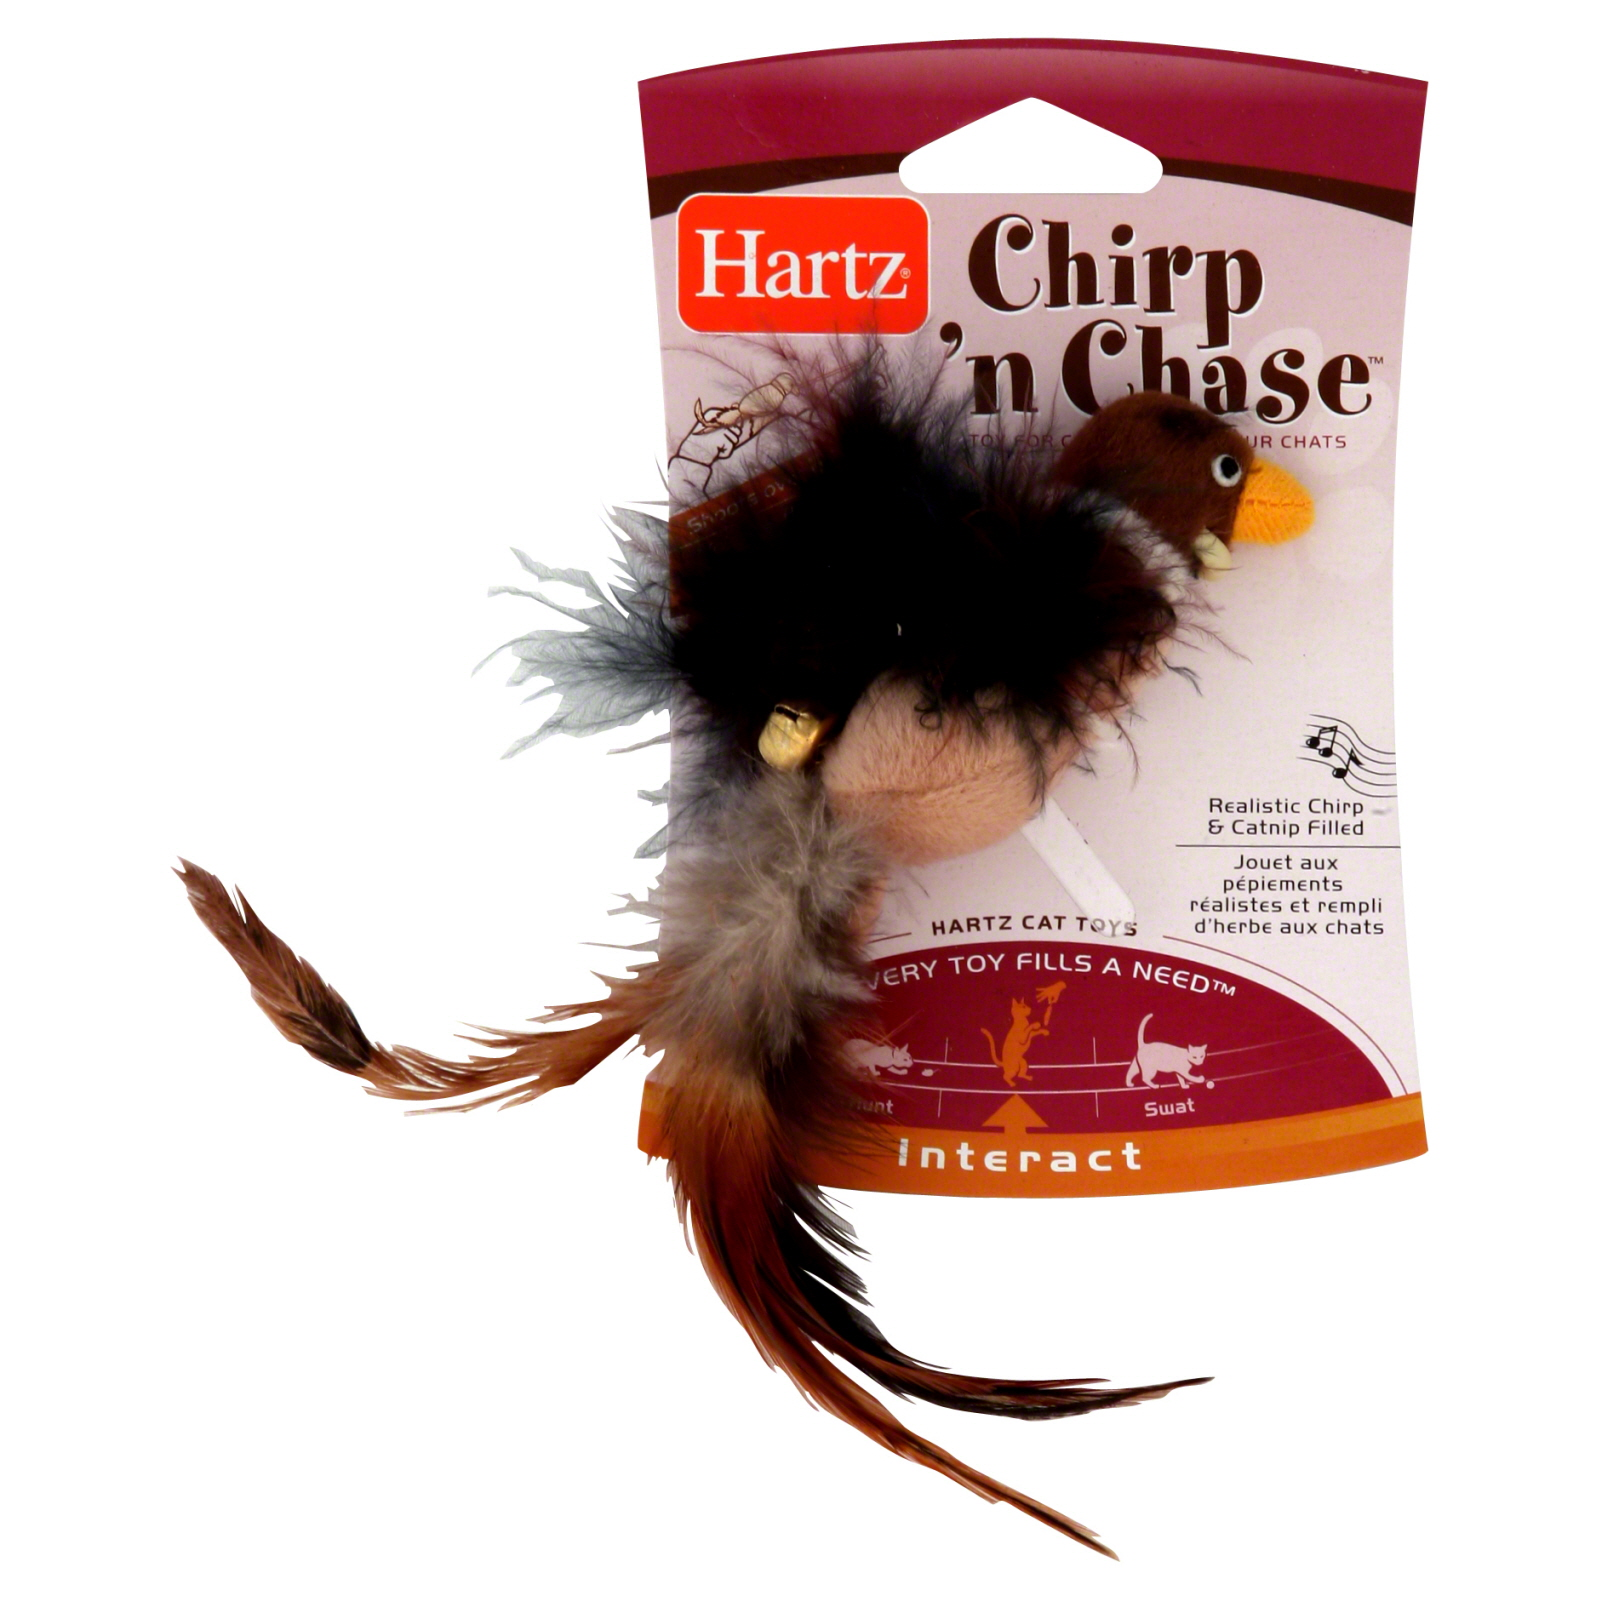 Hartz  Cat Toy, Chirp 'n Chase, 1 toy